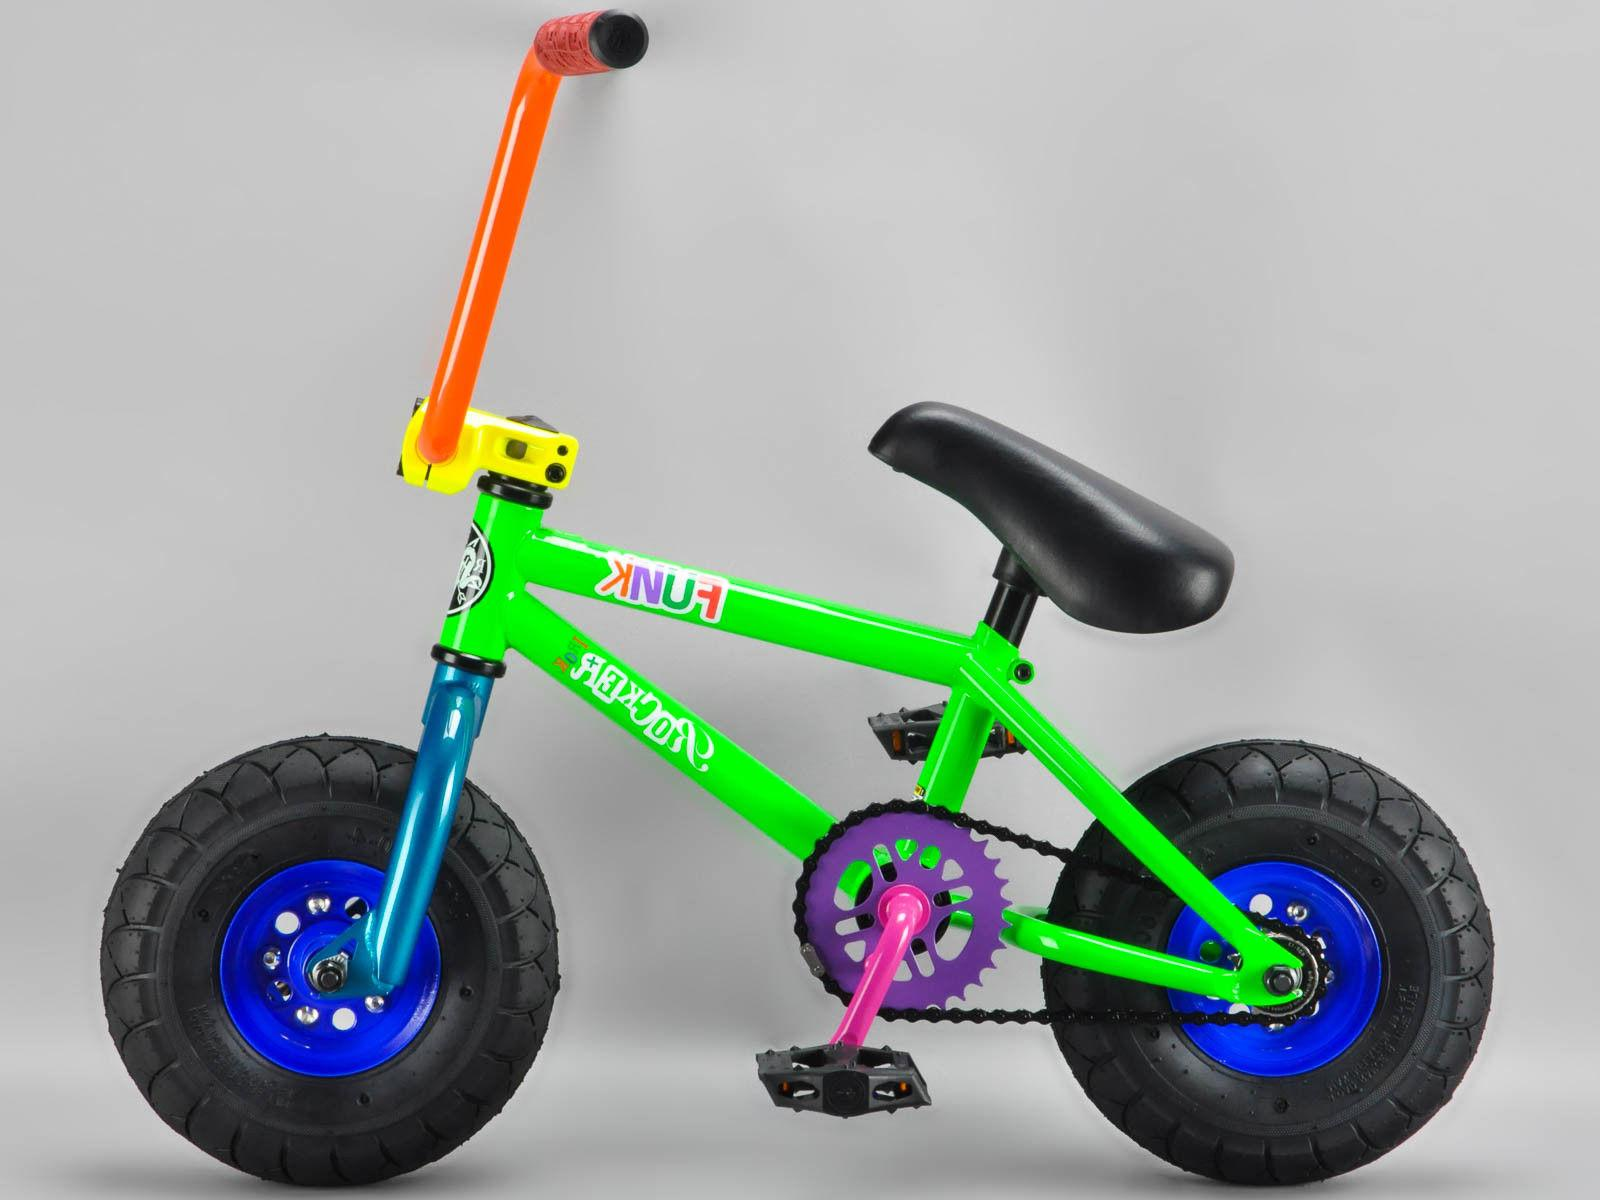 *GENUINE ROCKER* - FUNK iROK+ BMX RKR Mini BMX Bike